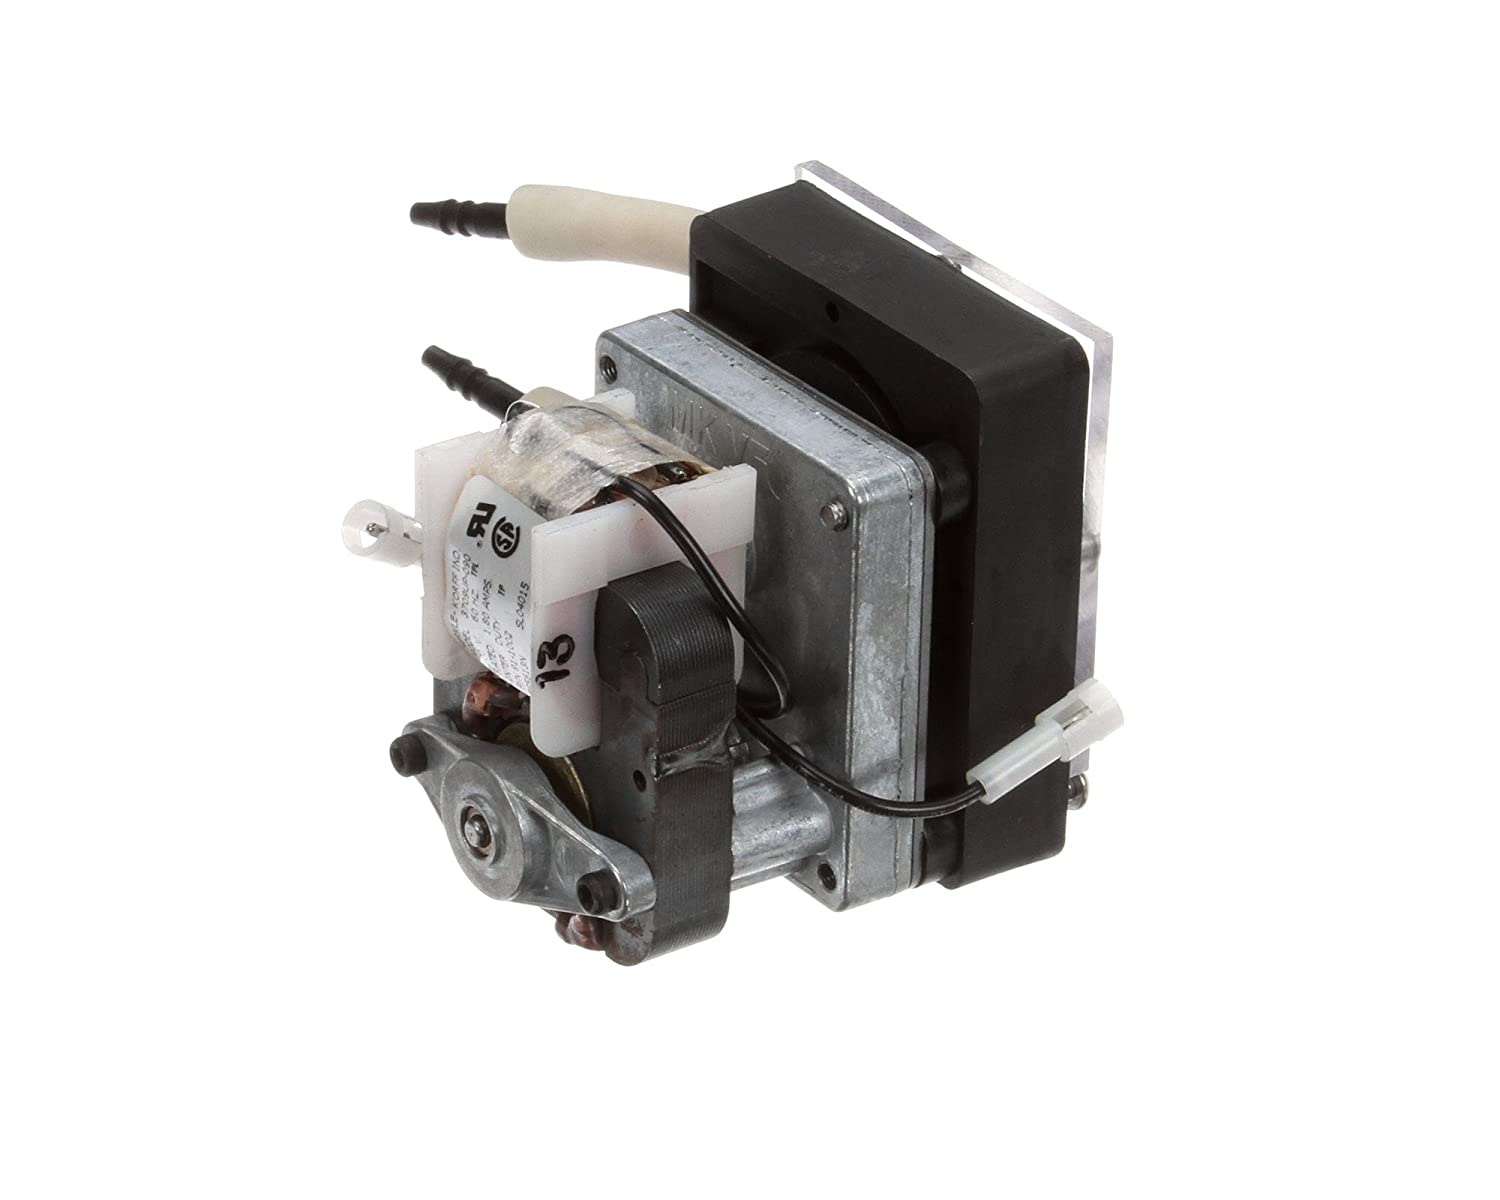 Image of American Dish Service 064-0001 Complete Chemical Pump, 9' Height, 9' Width, 7' Length Industrial